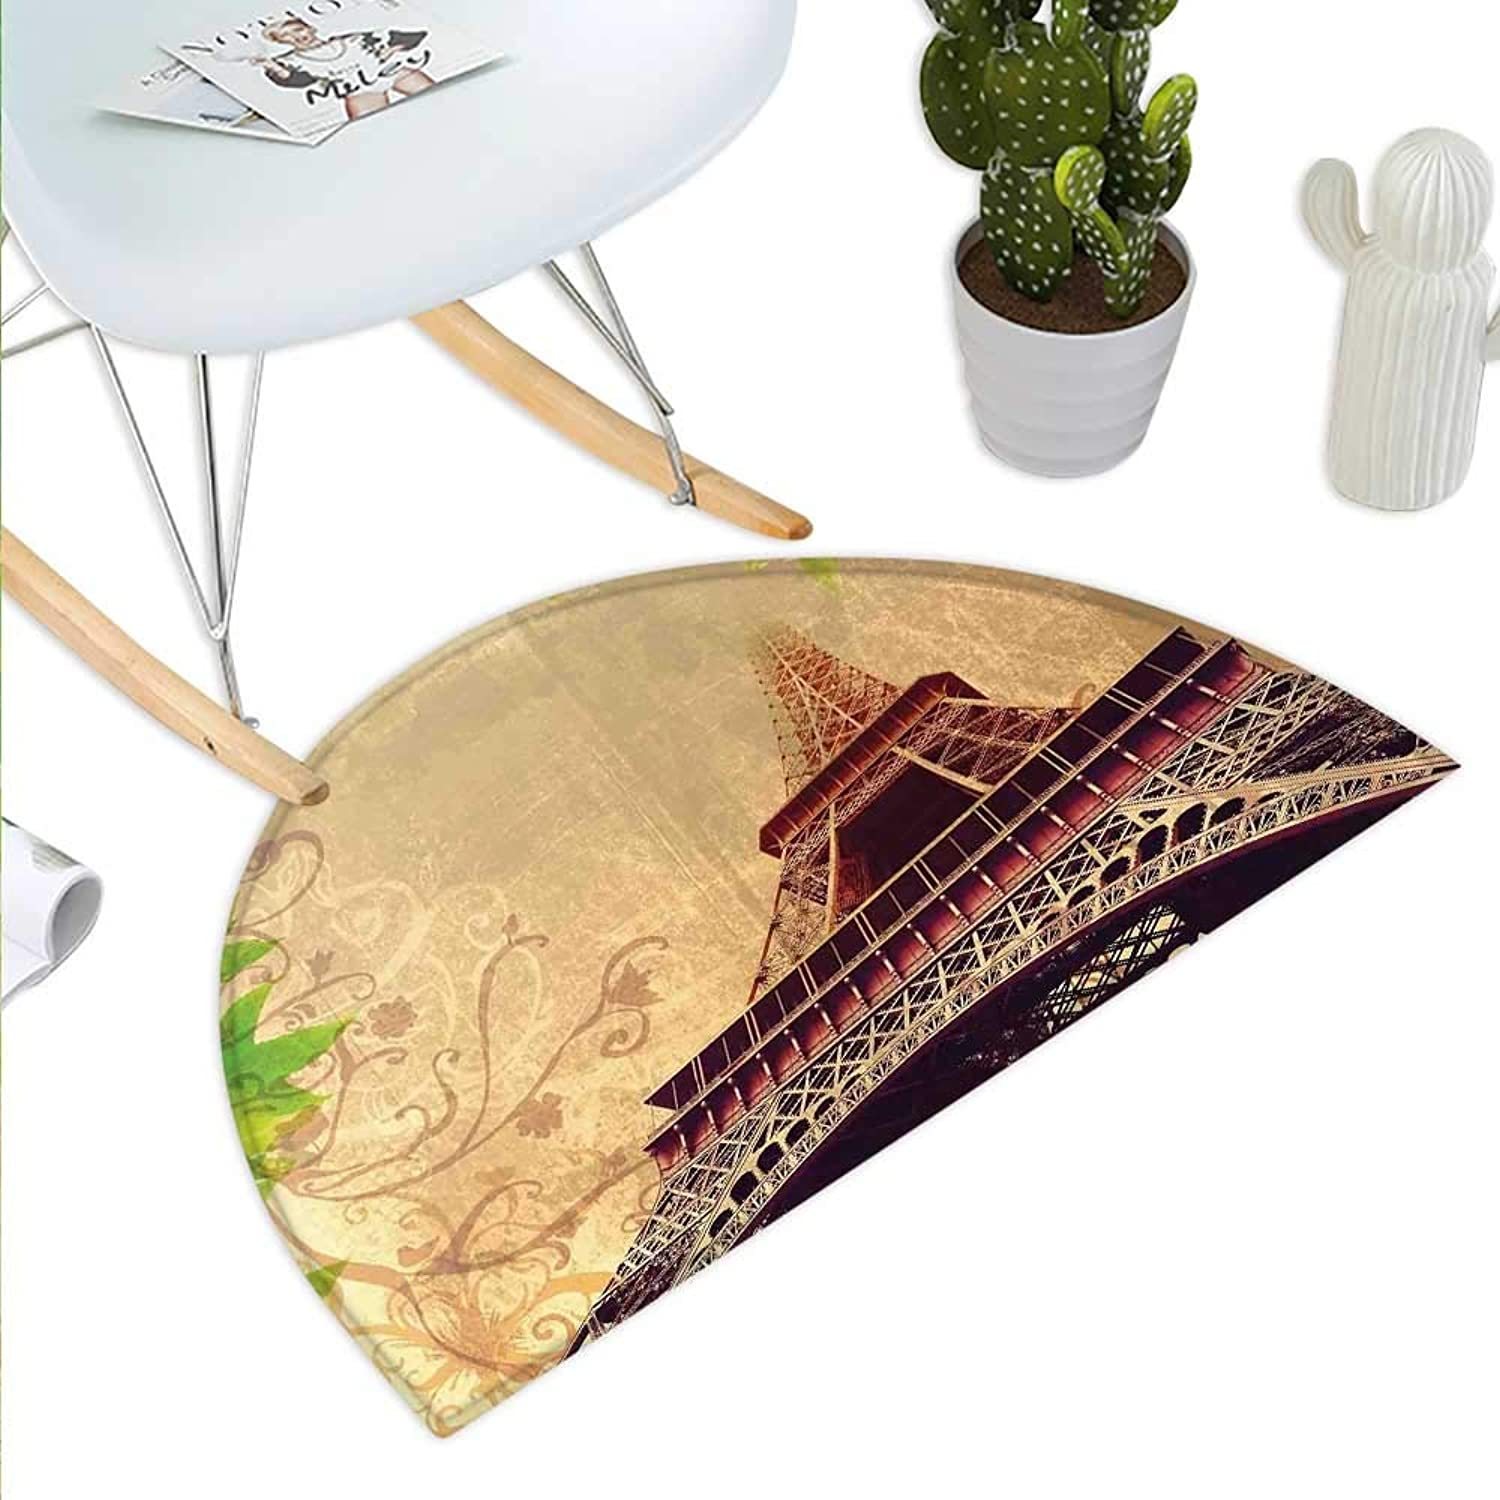 Eiffel Tower Semicircle Doormat Eiffel Tower and Tree Leaves on Grunge Background with Swirls and Scrolls Halfmoon doormats H 47.2  xD 70.8  Sepia Beige